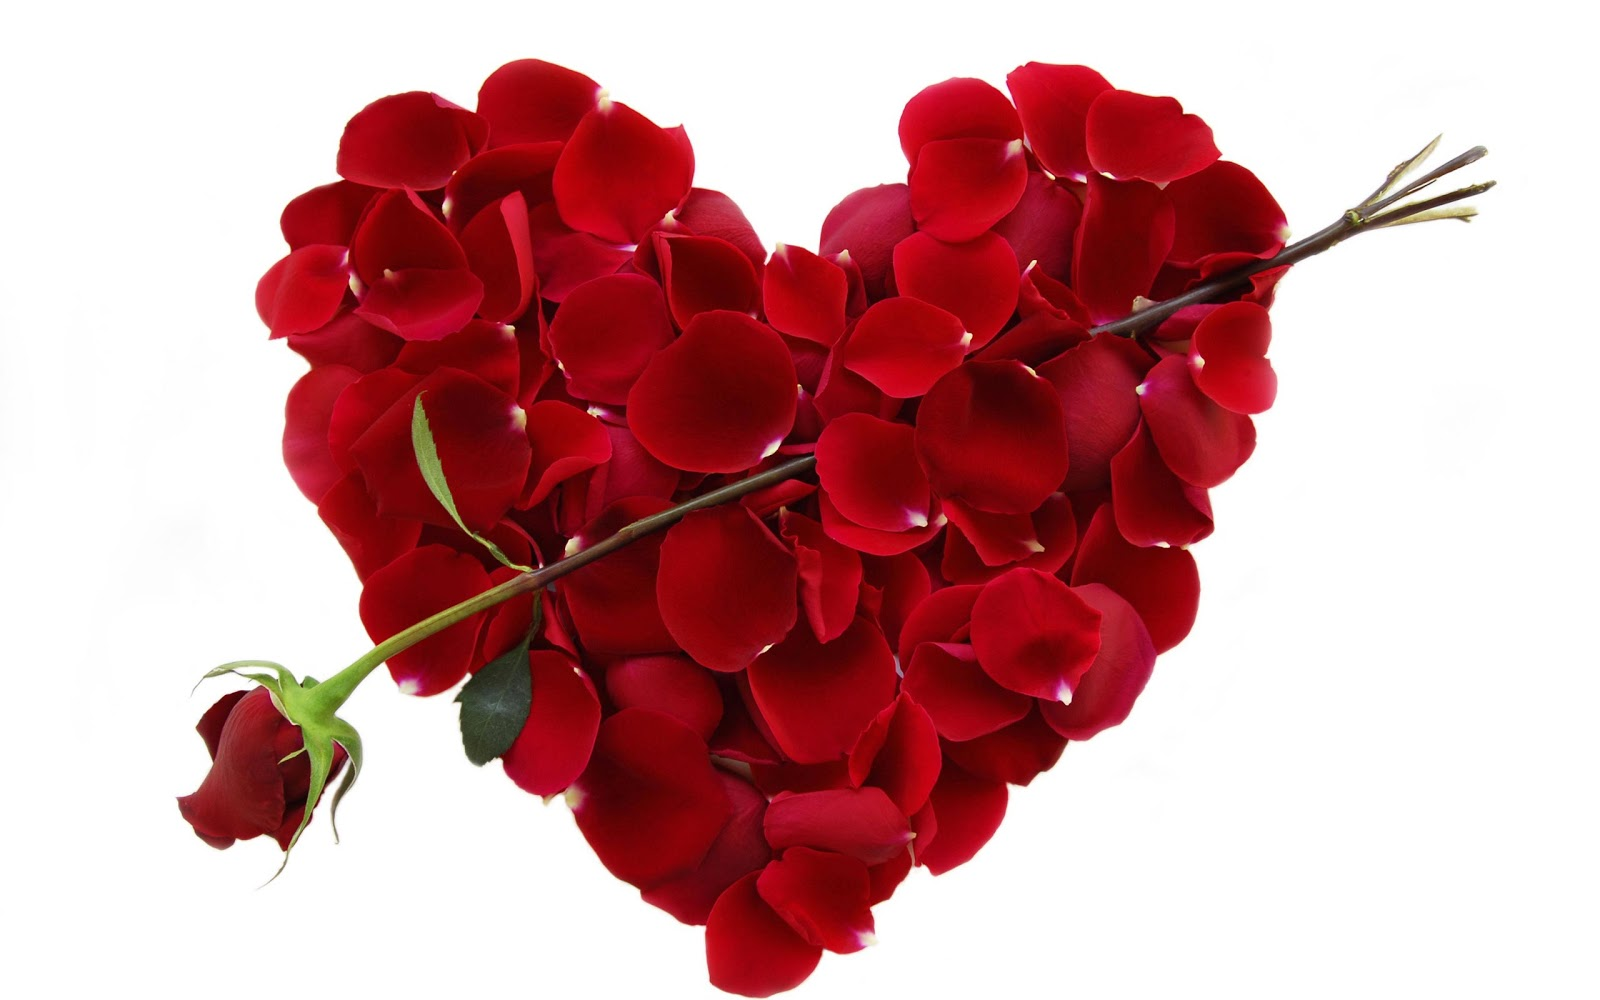 Uncovering the secret language of valentines day flowers the valentinesdayflowerheart izmirmasajfo